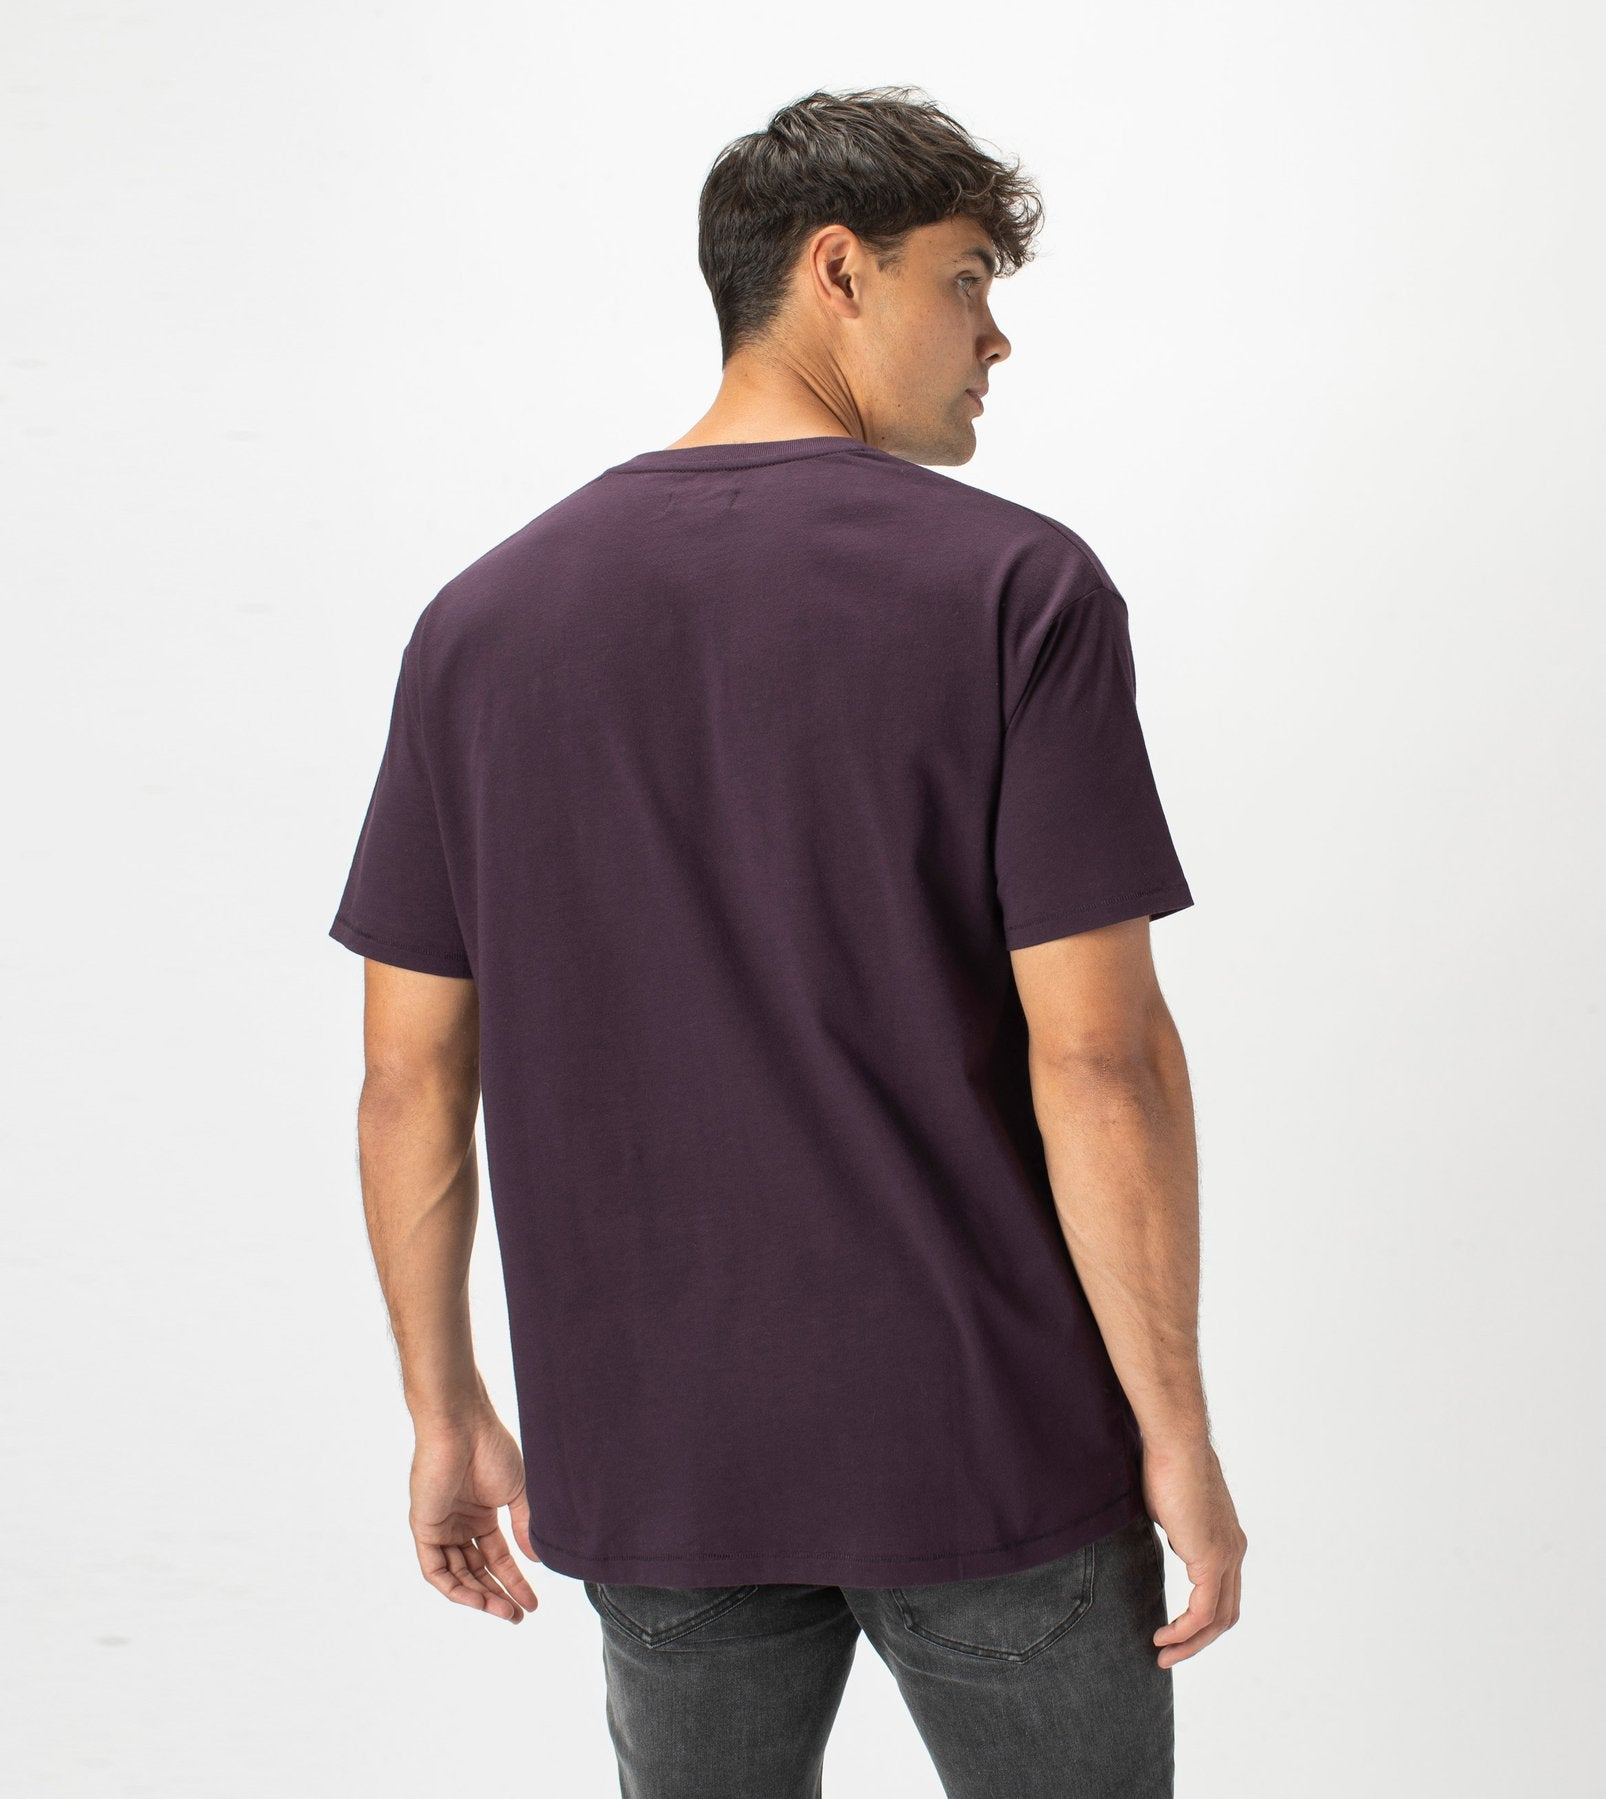 ZANEROBE M'S T-SHIRTS BOX TEE - DK GRAPE